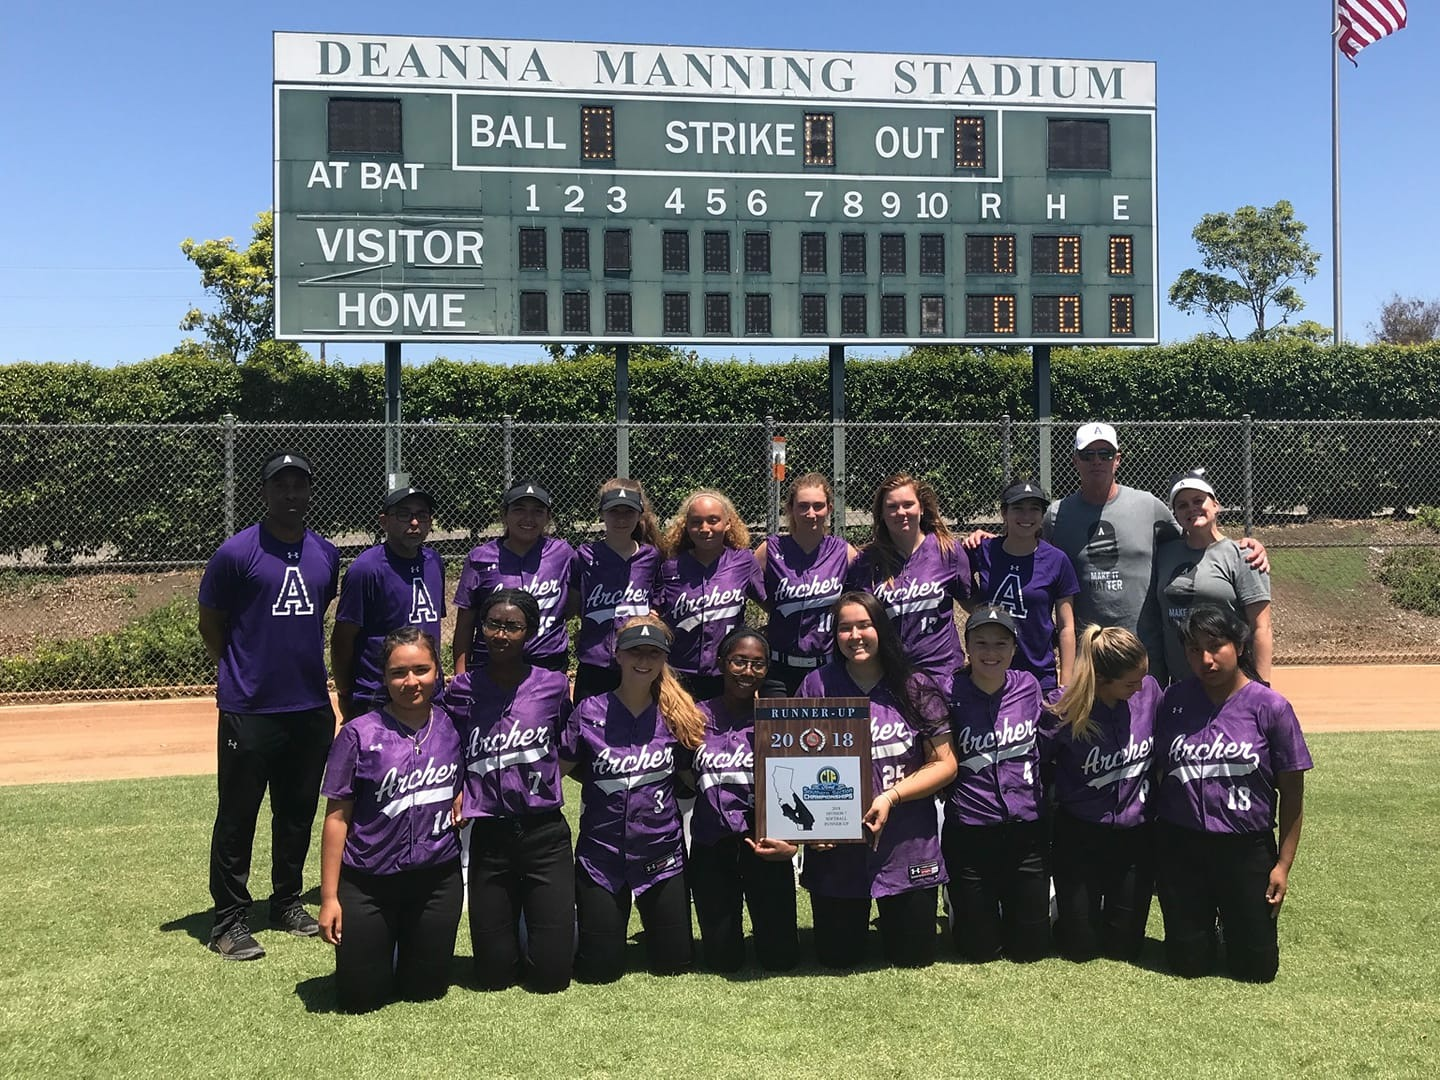 Archer Softball at the Deanna Manning Stadium for the CIF championship game. Archer lost 2-12 to Serra High School.